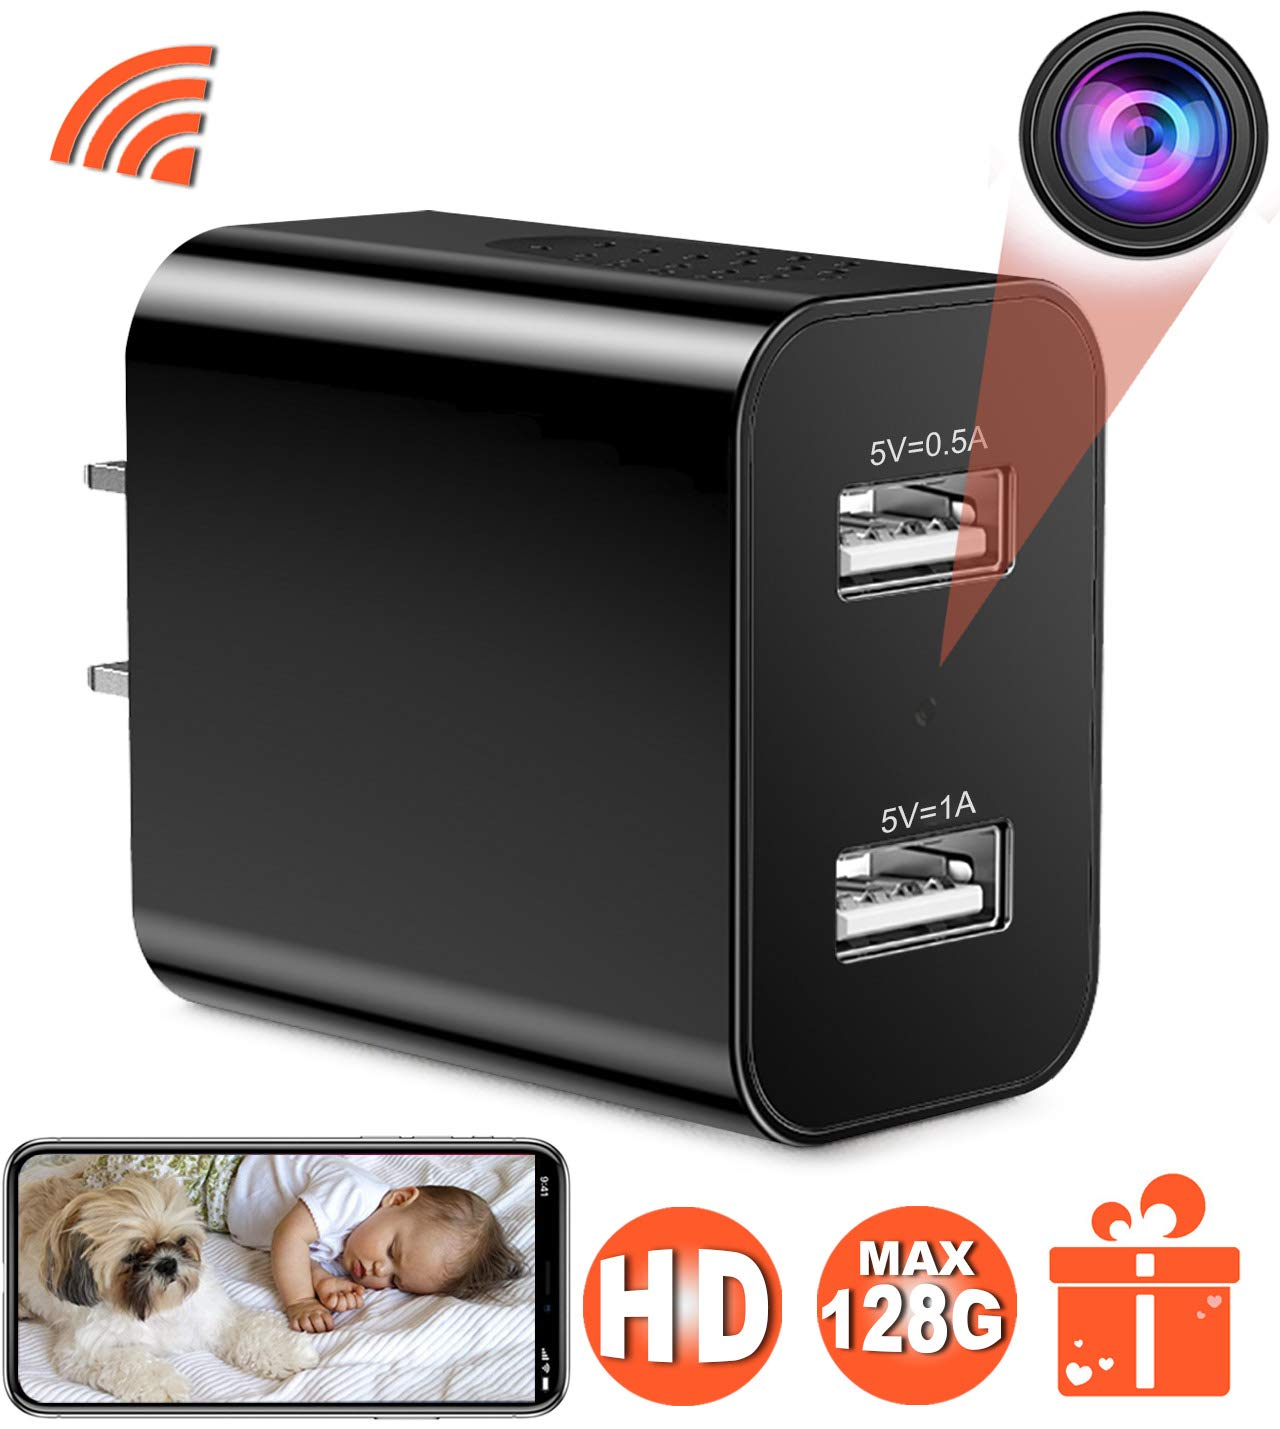 [Upgraded 2019] Spy Hidden Camera with Remote Viewing, USB Charger WiFi Nanny Camera 1080P HD H.264 with Motion Detection for Home Office Security Surveillance, No Audio